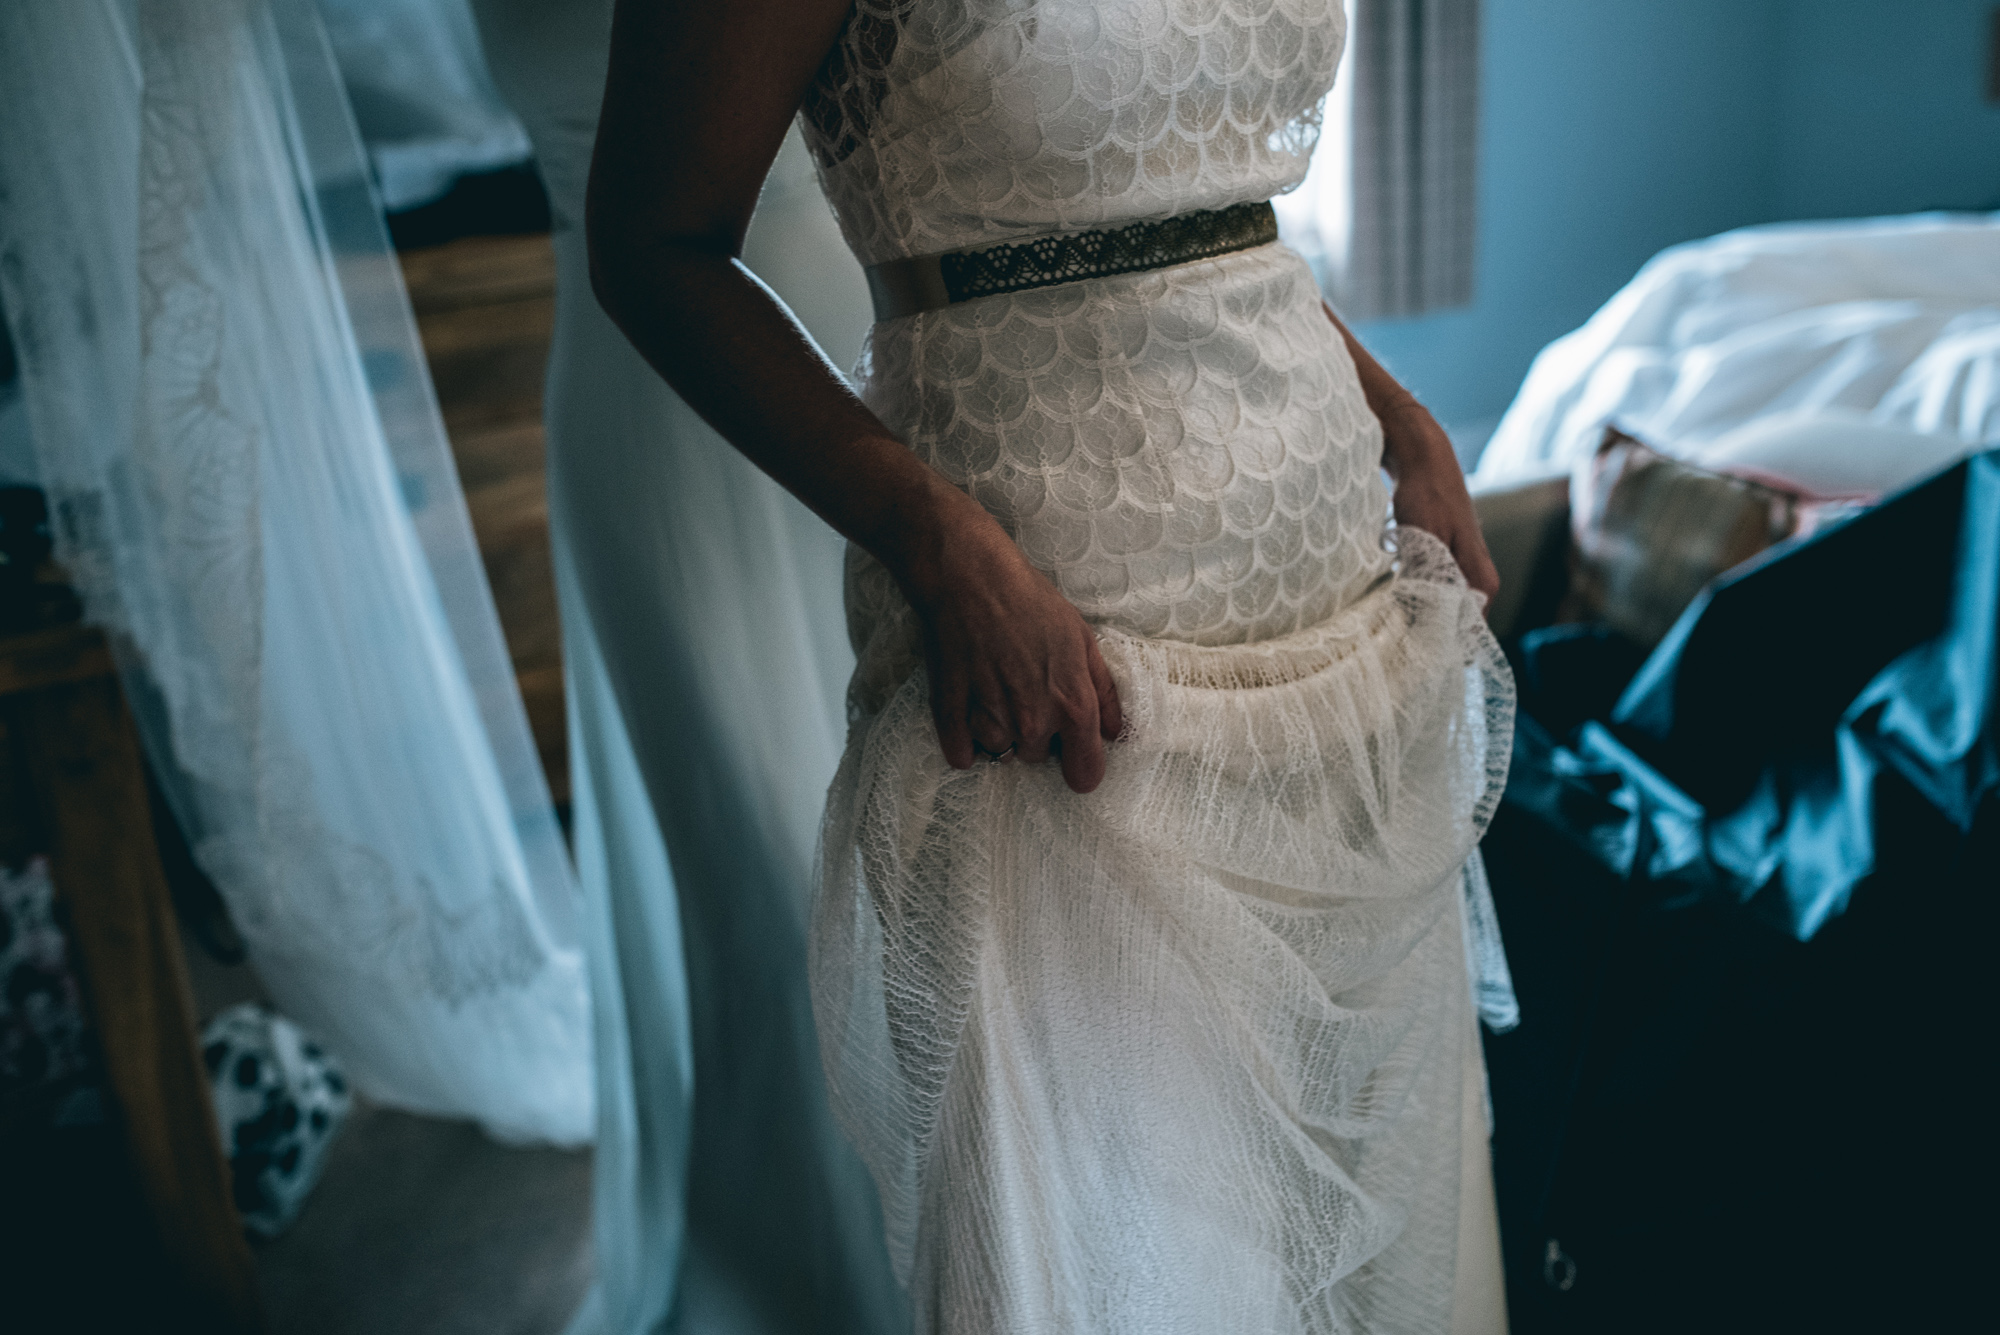 Kate-Beaumont-Sheffield-Lucy-Bohemian-Lace-Dress-Barn-Wedding-Cumbria-1.jpg